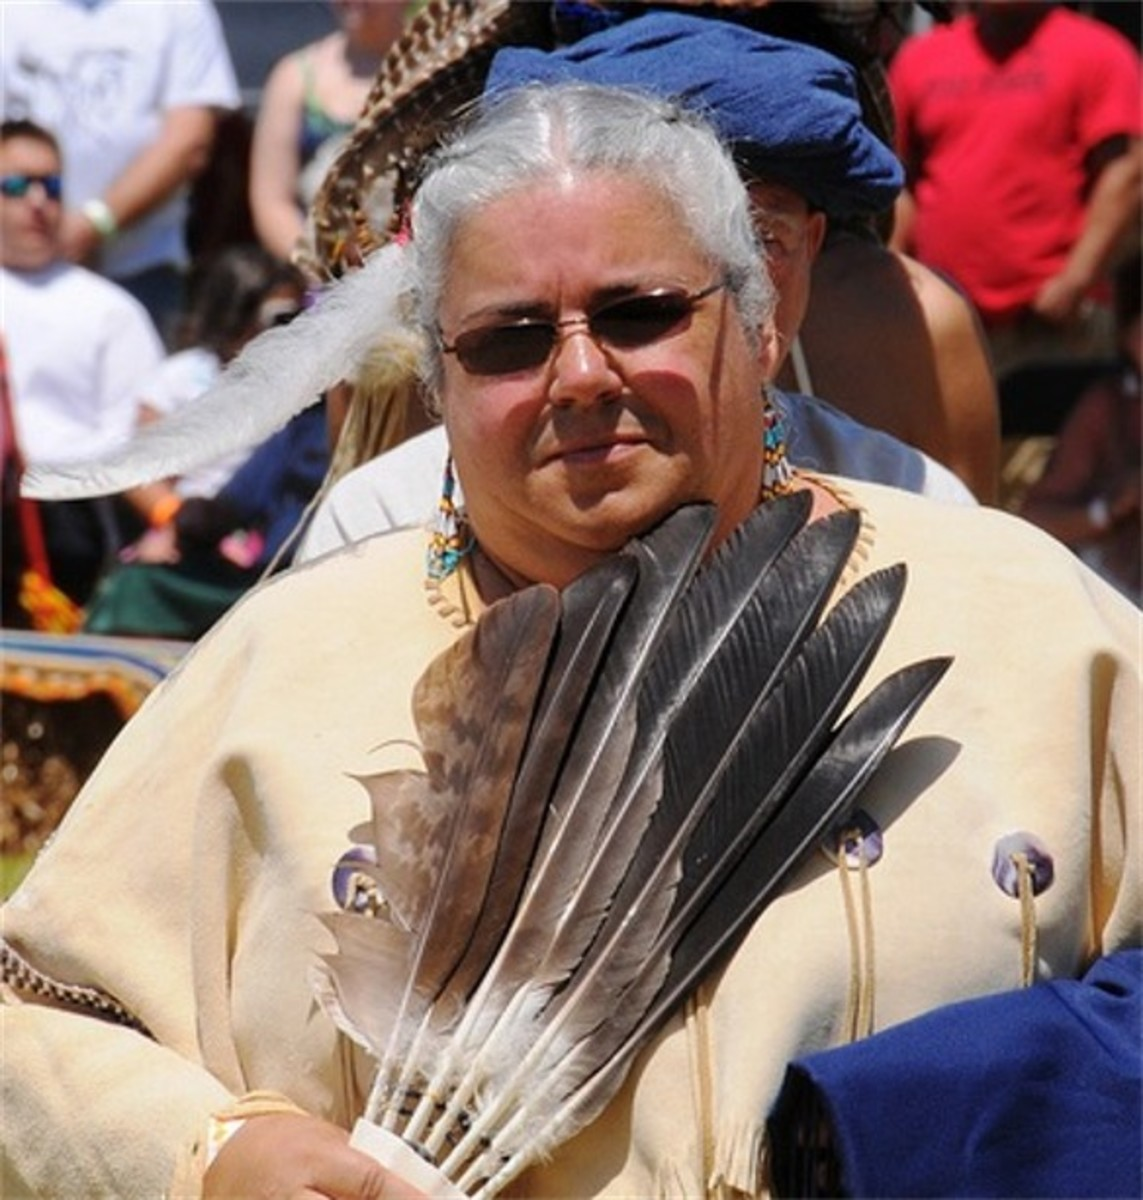 Sharon Bryant, the first woman Chief, elected in 2011